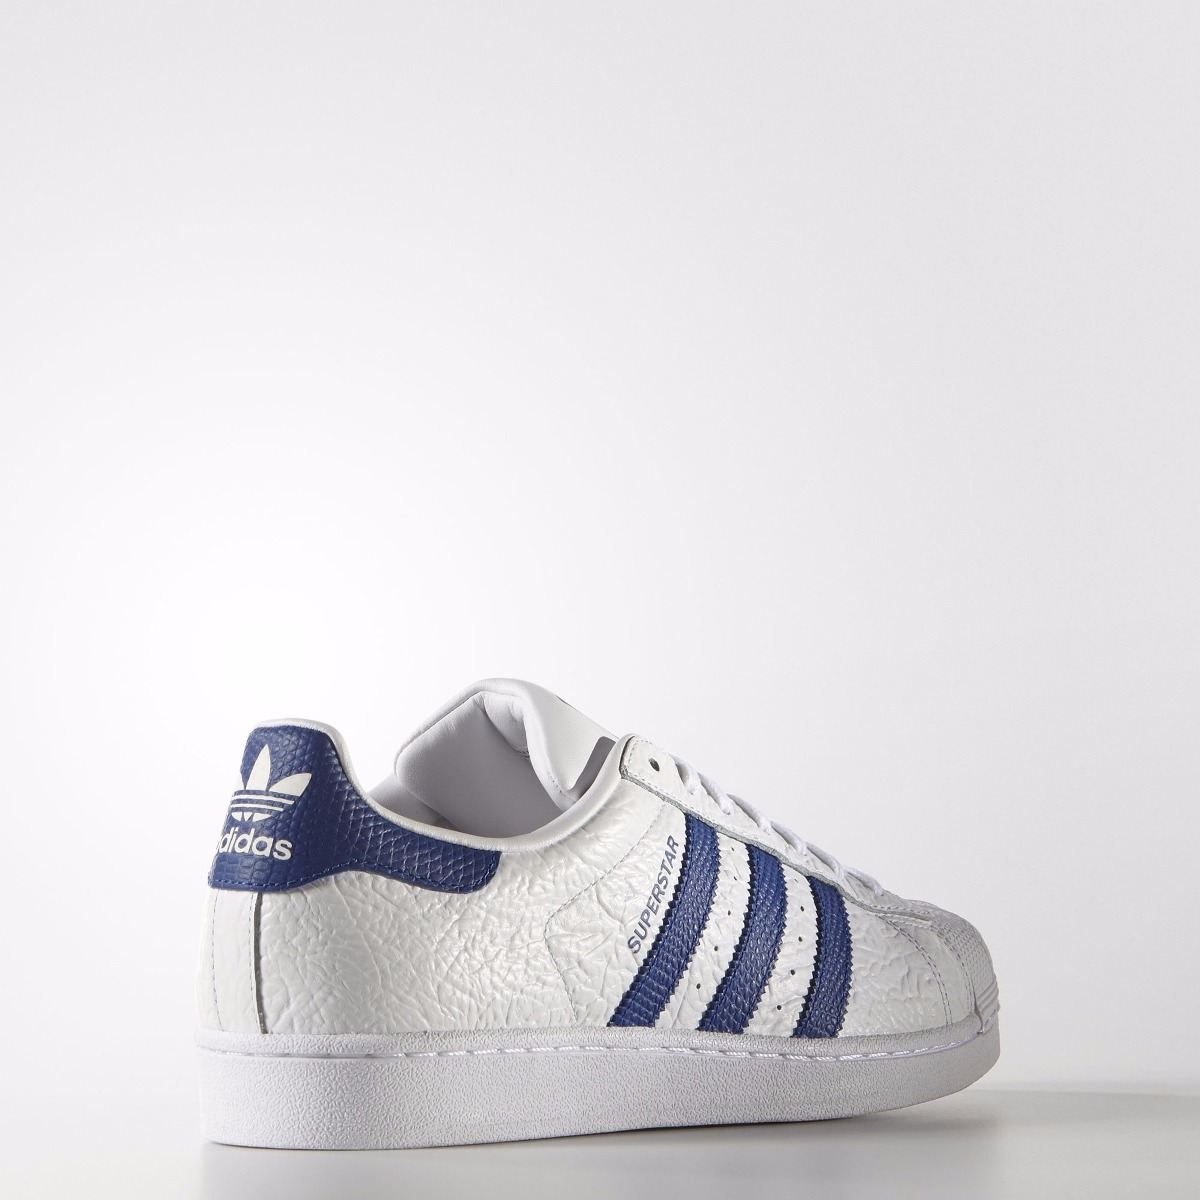 2adidas superstar animal hombre